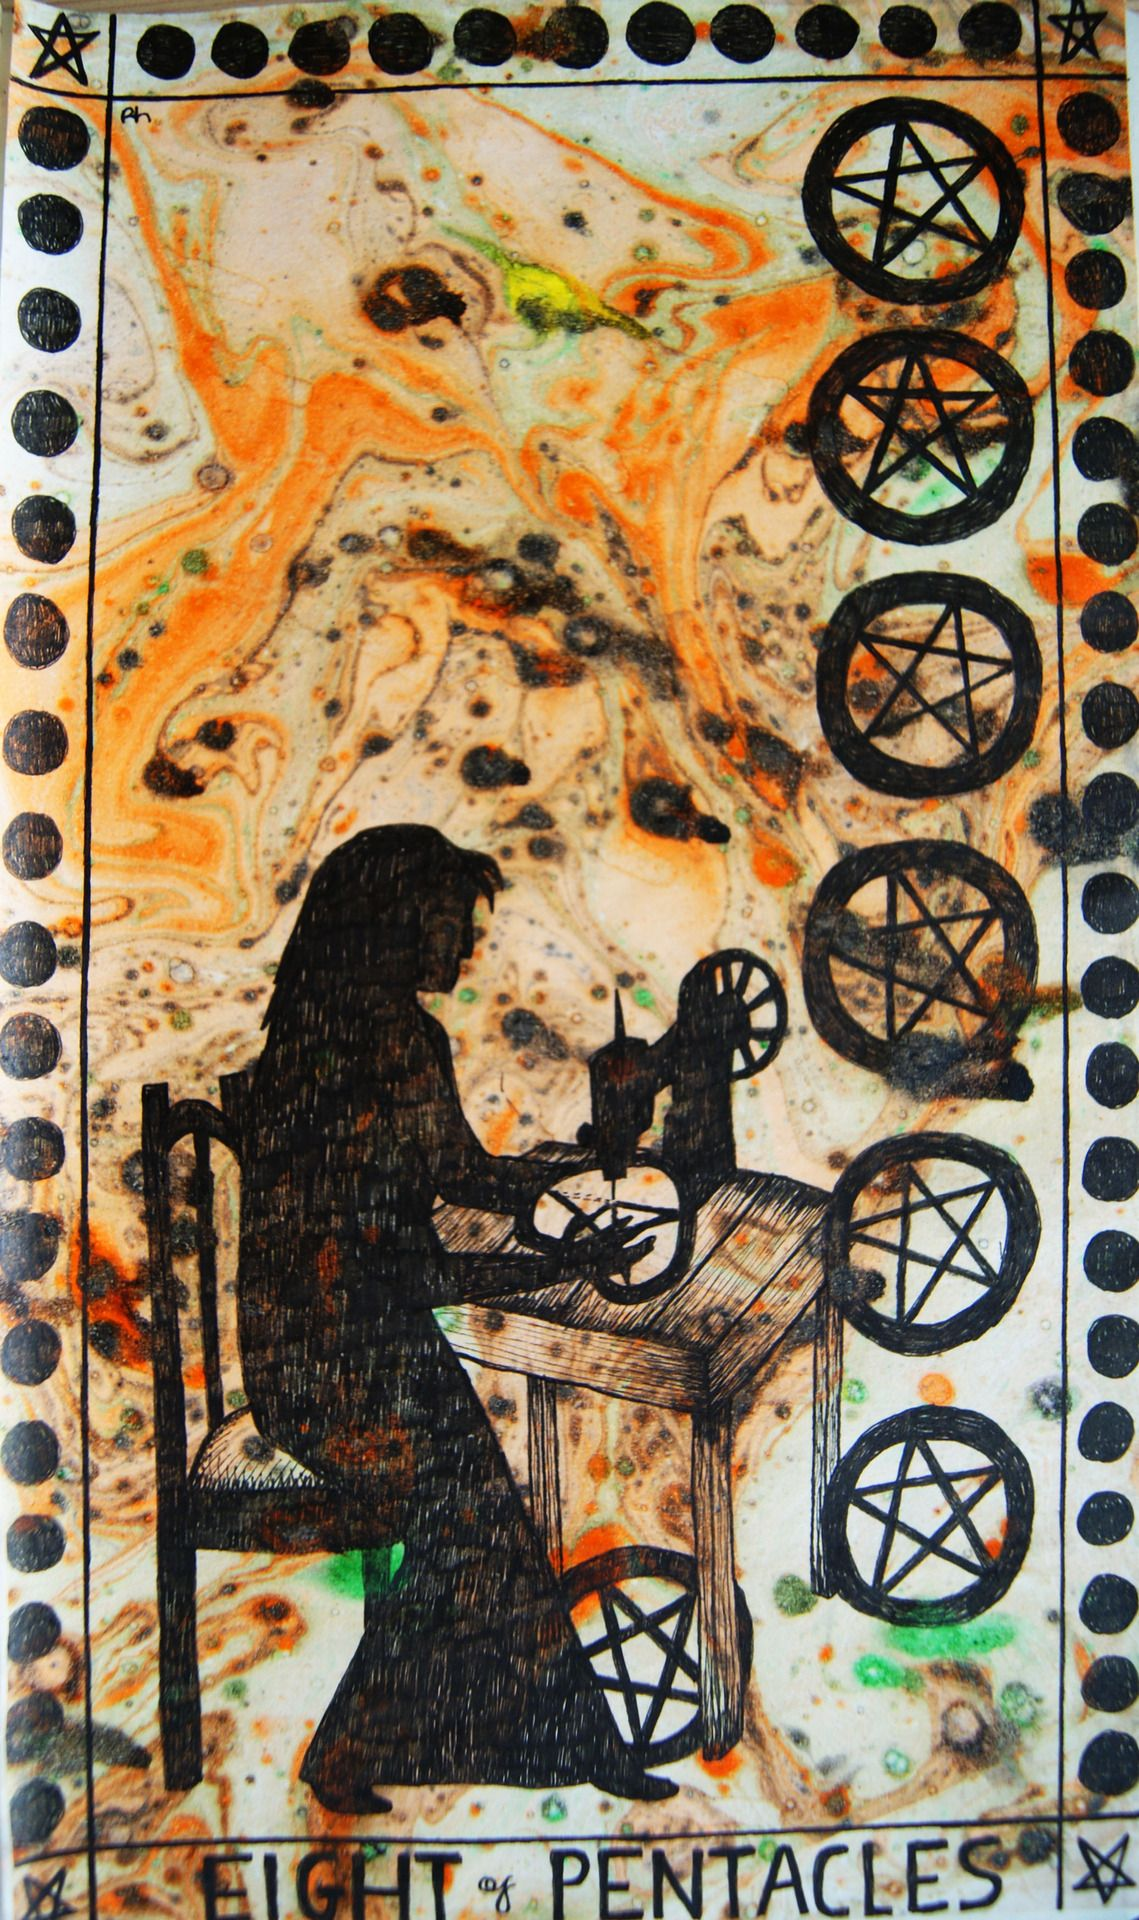 raychiemay: Eight of Pentacles -If you love Tarot, visit me at www.WhiteRabbitTarot.com